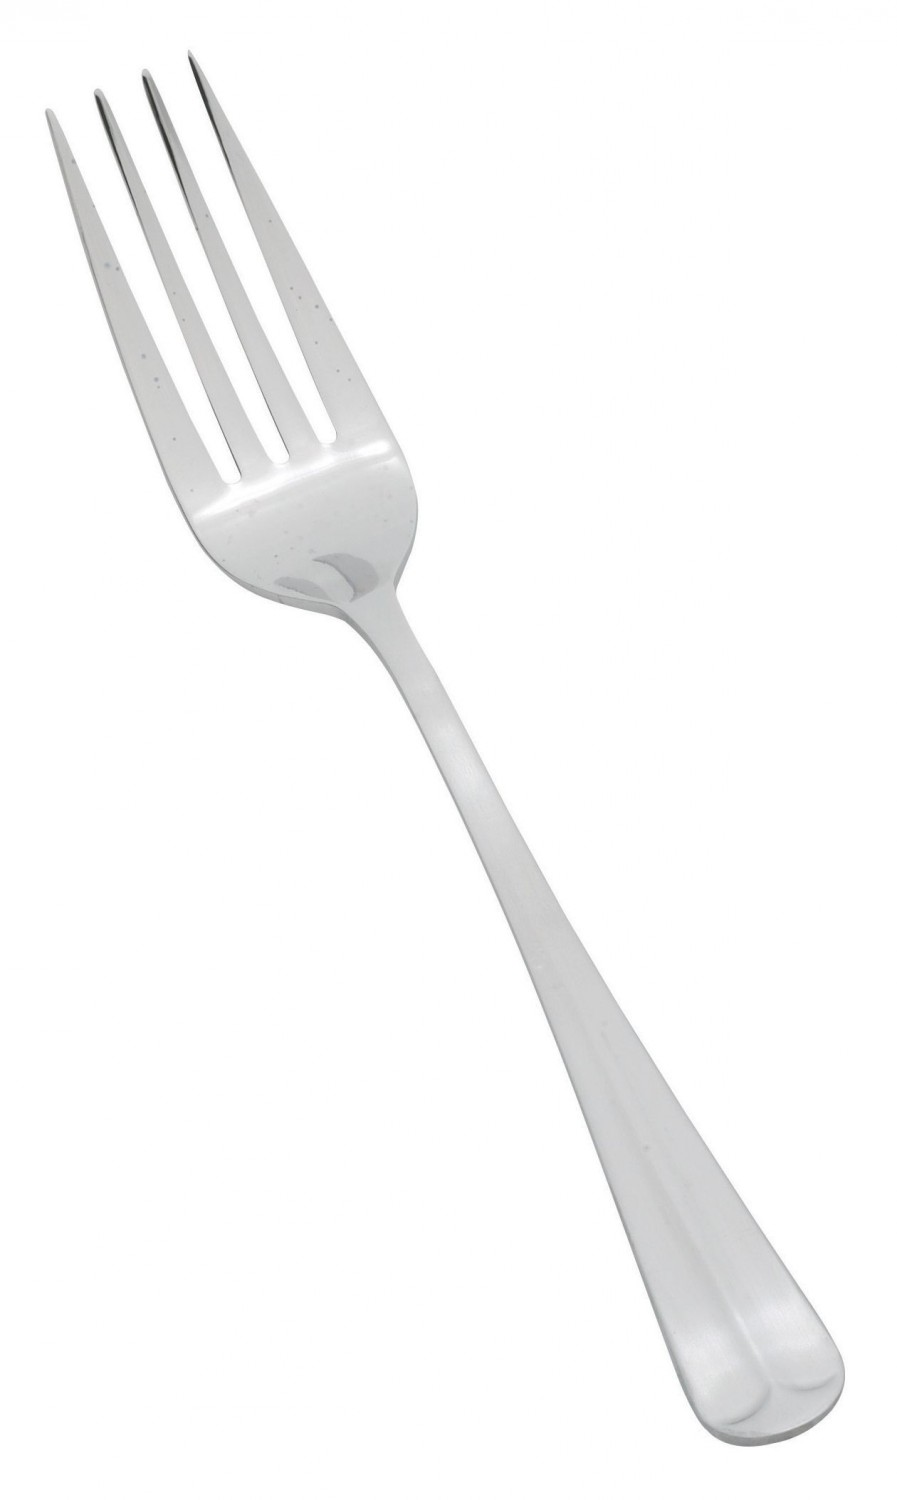 Winco 0015-054 Lafayette Heavyweight 18/0 Stainless Steel 4 Tines Dinner Fork 7-1/2""